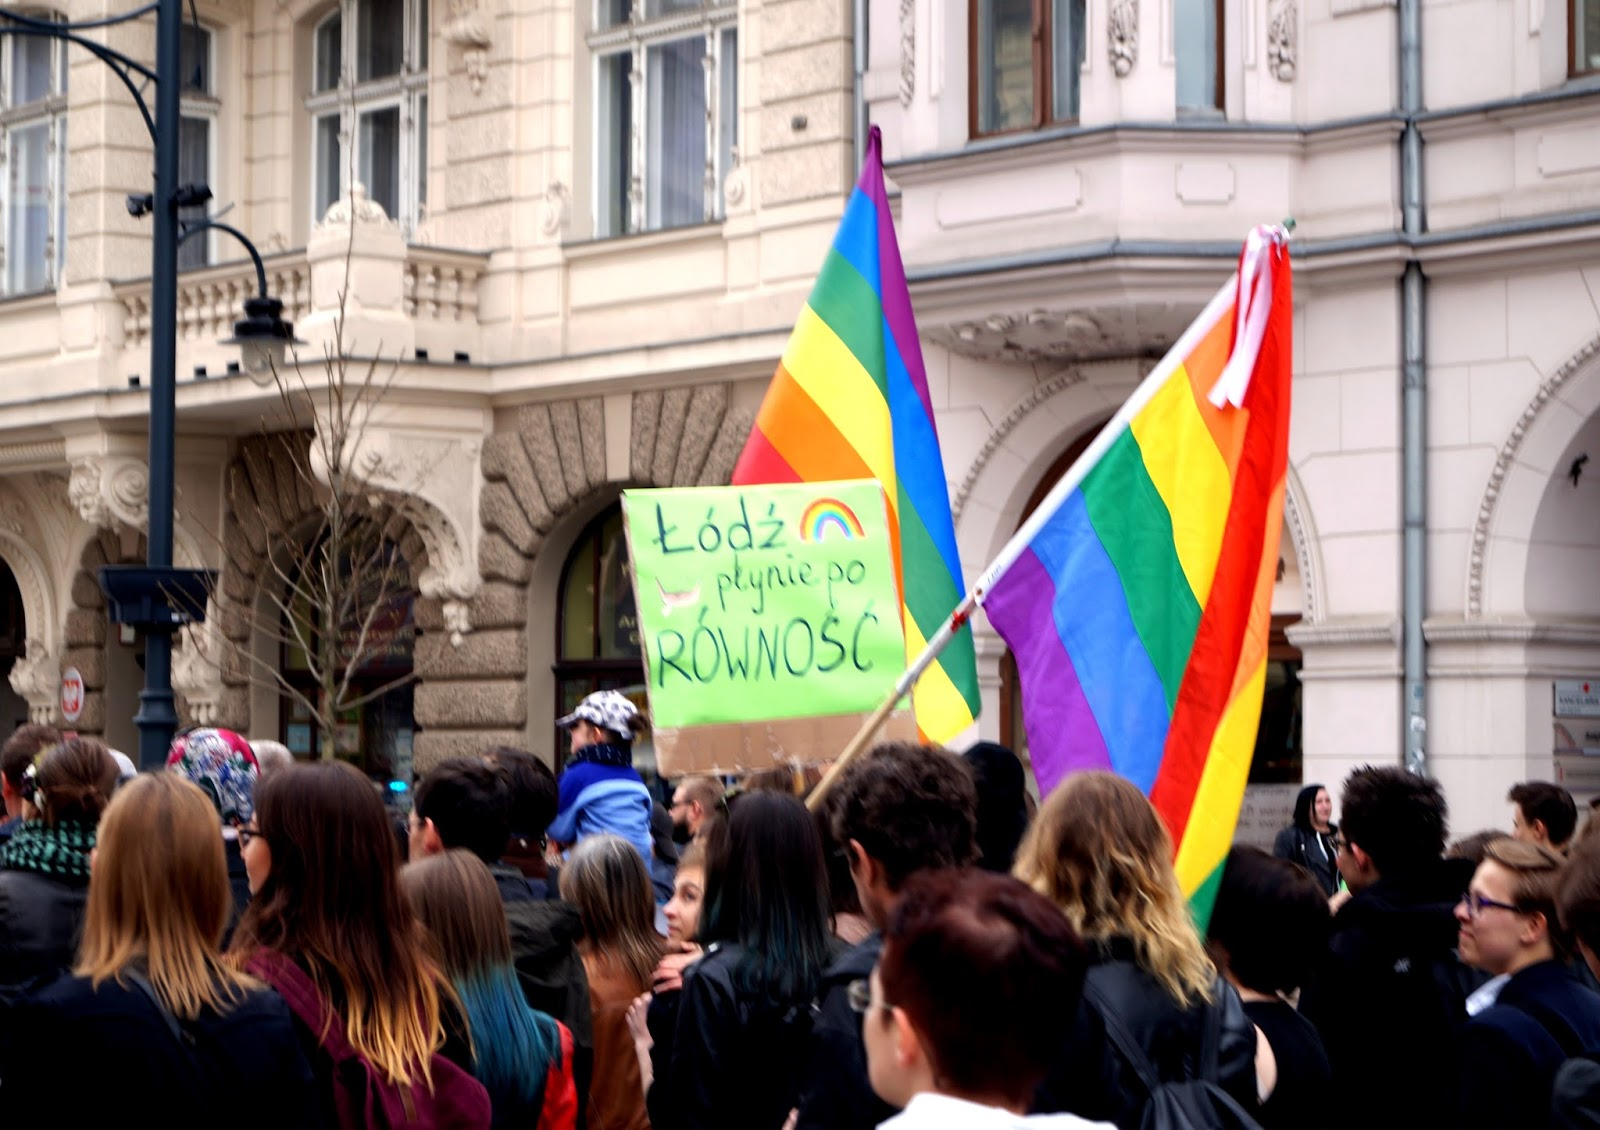 Lodz for equality